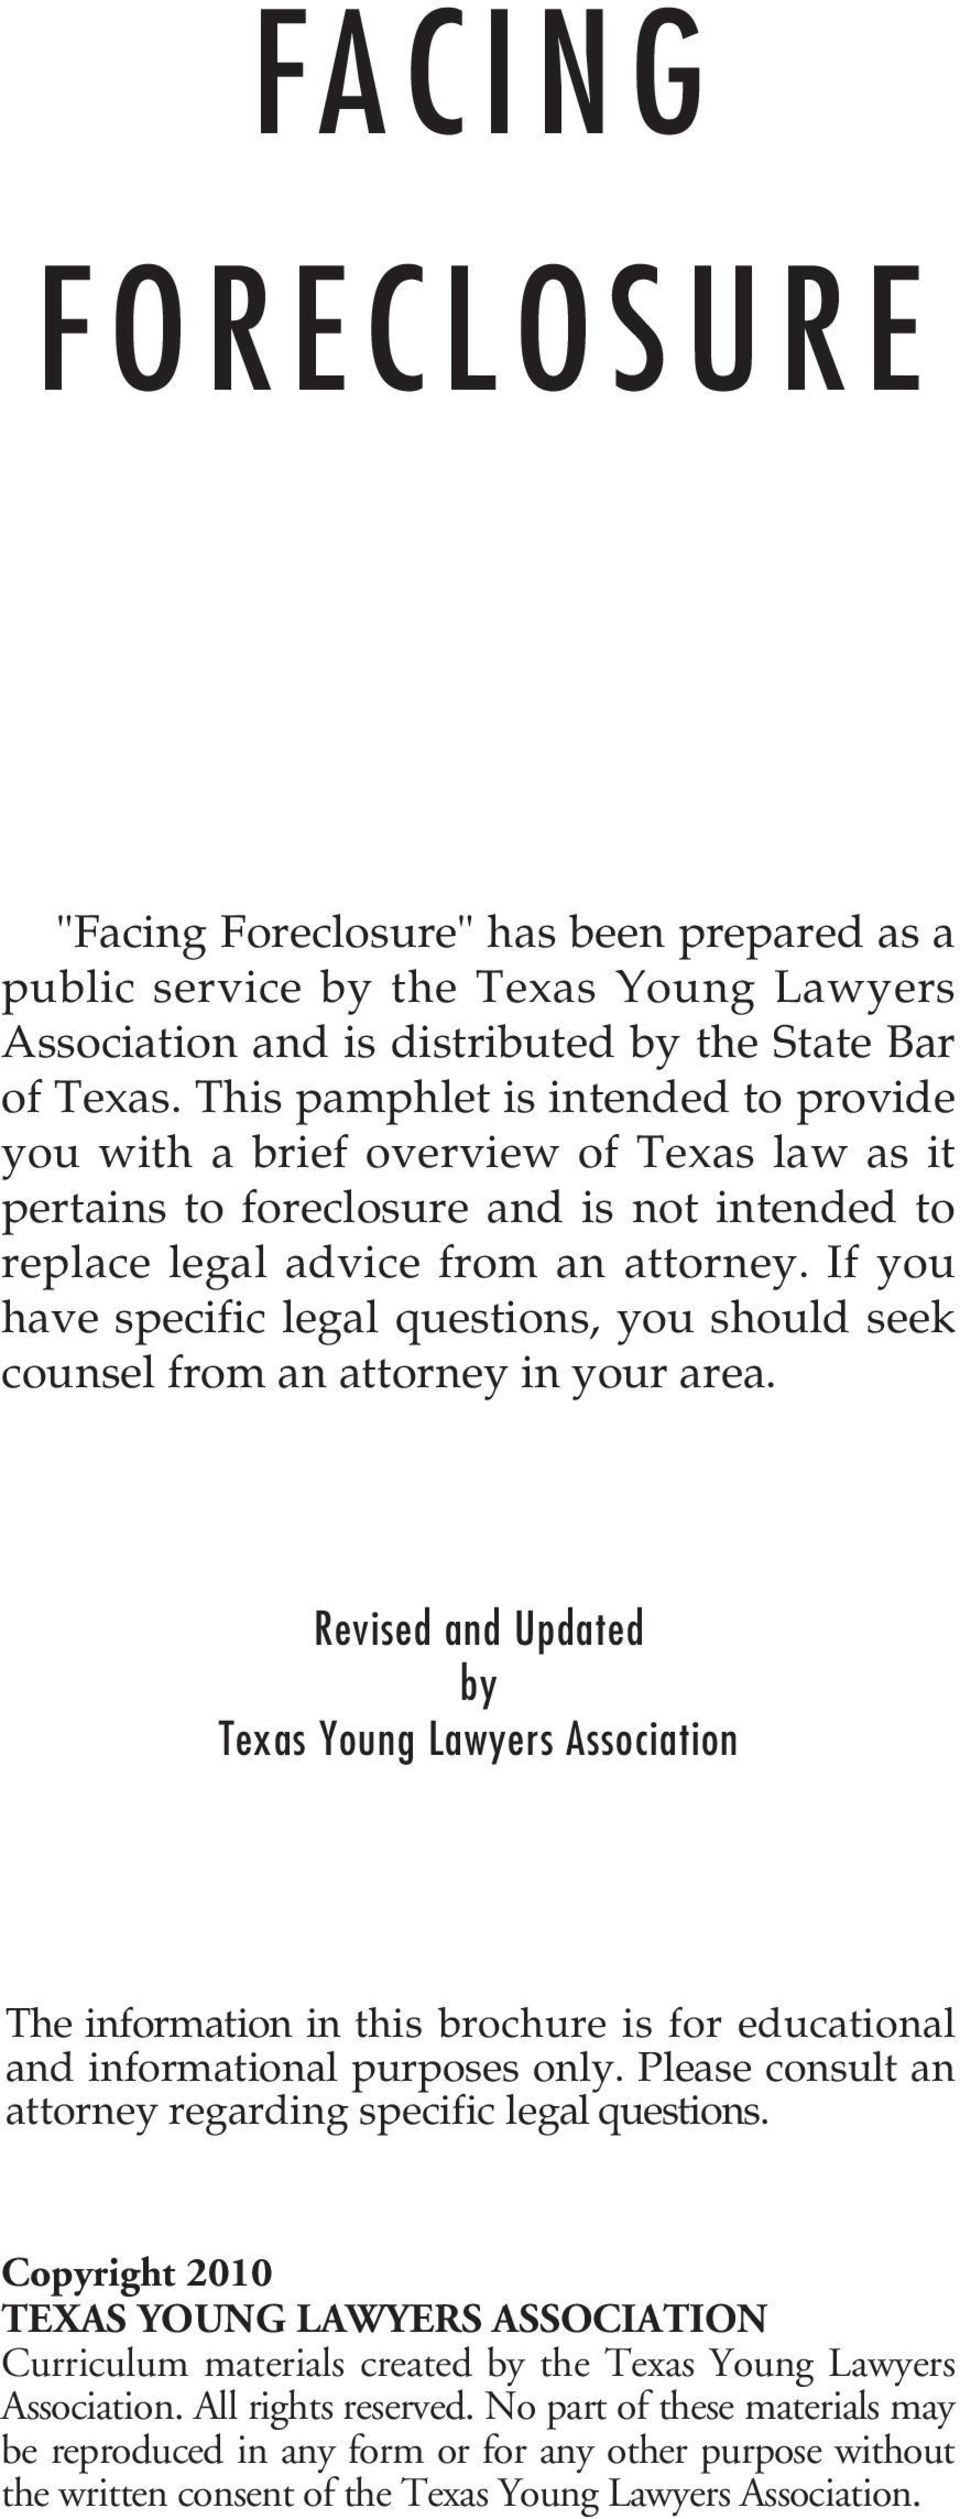 If you have specific legal questions, you should seek counsel from an attorney in your area.